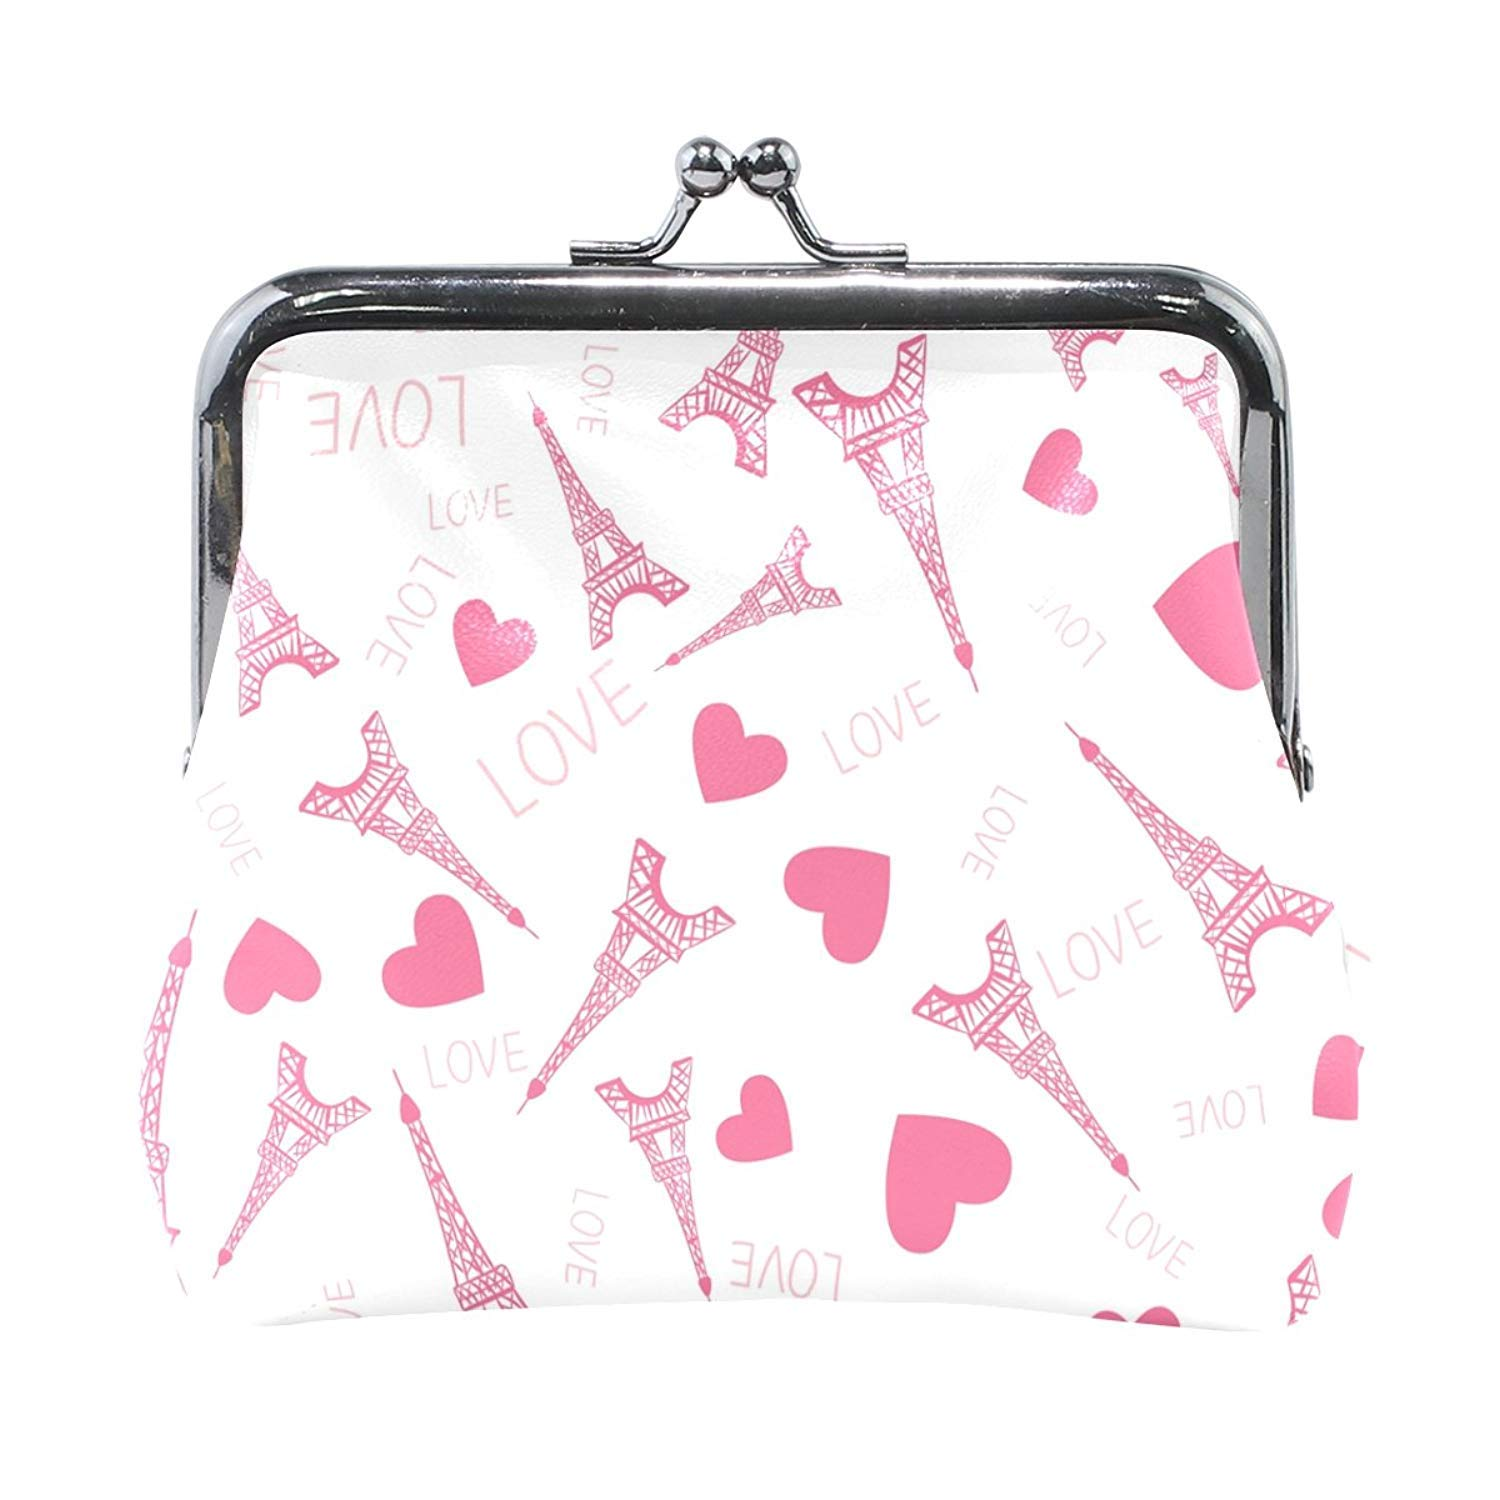 Coin Purses Eiffel Tower Love Heart Kiss-lock Buckle Vintage Clutch Cosmetic Bags by All agree (Image #1)